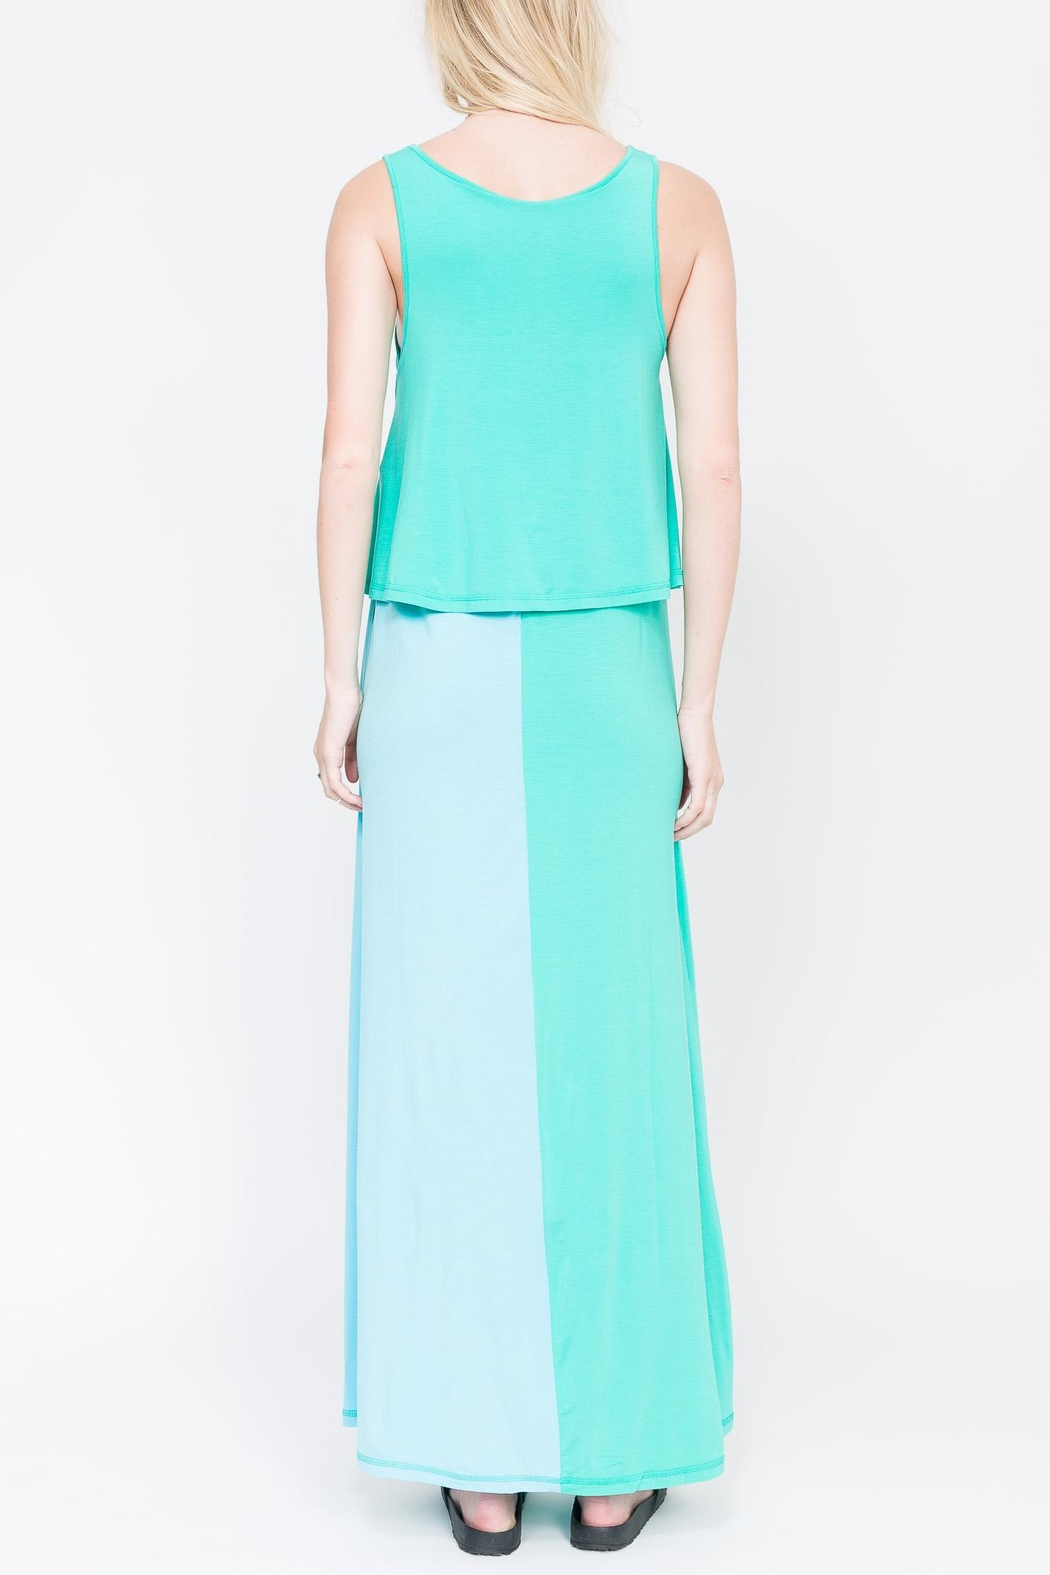 QUINN Emma Maxi Dress - Side Cropped Image